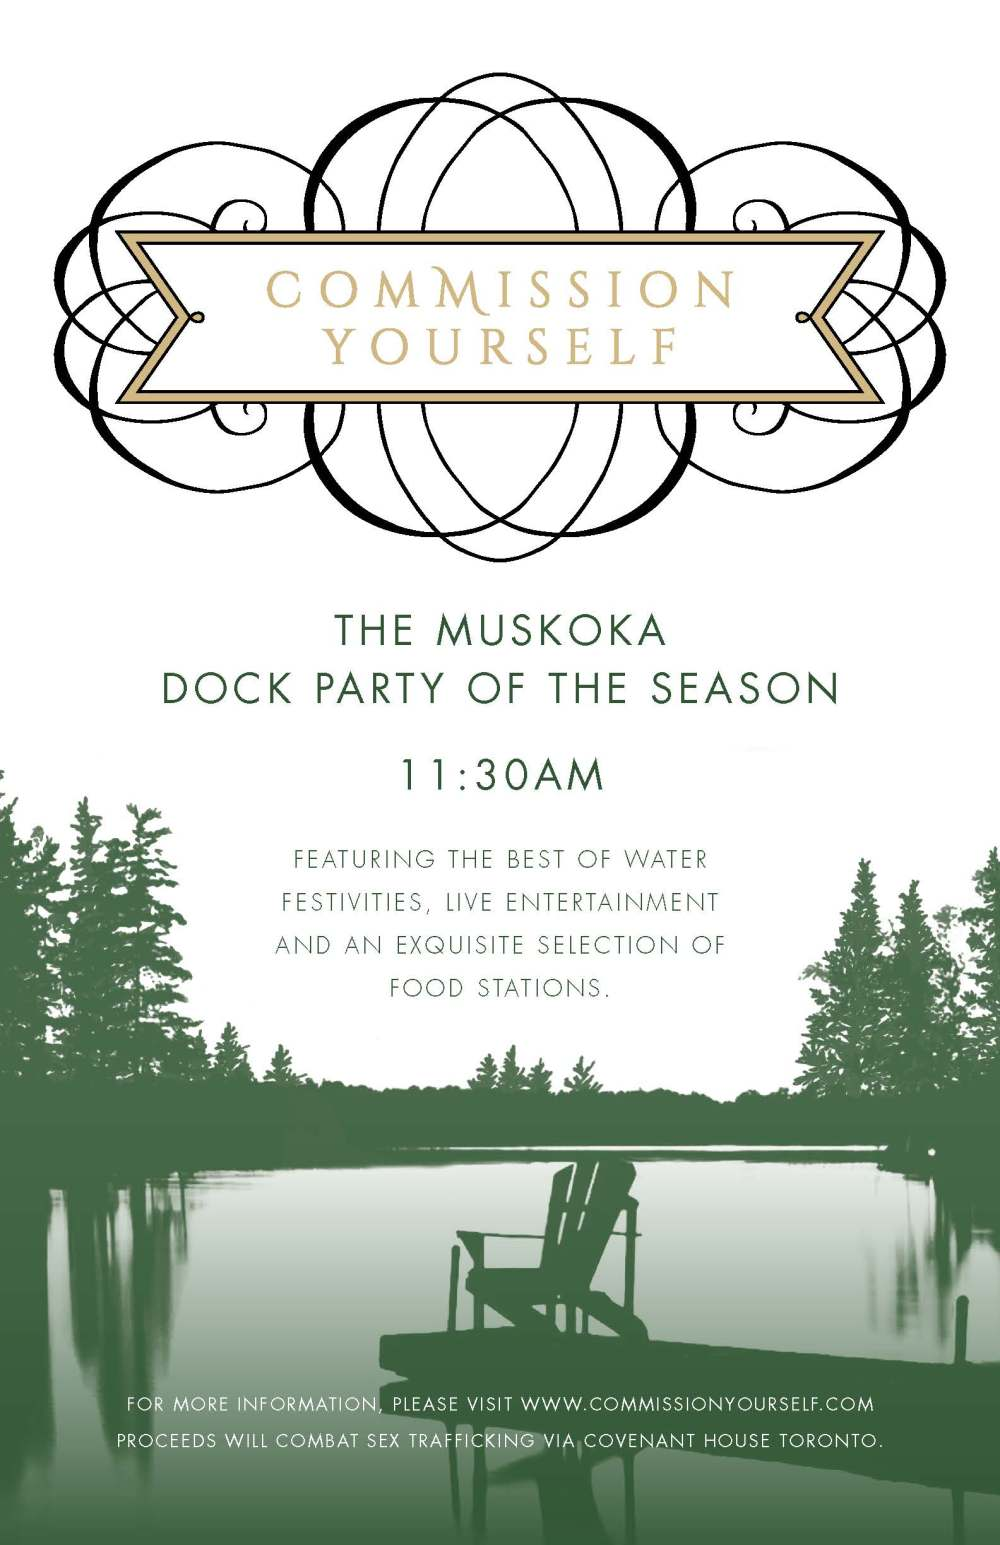 Commission Yourself_Small Poster_Muskoka_V2.0 (FINAL).jpg